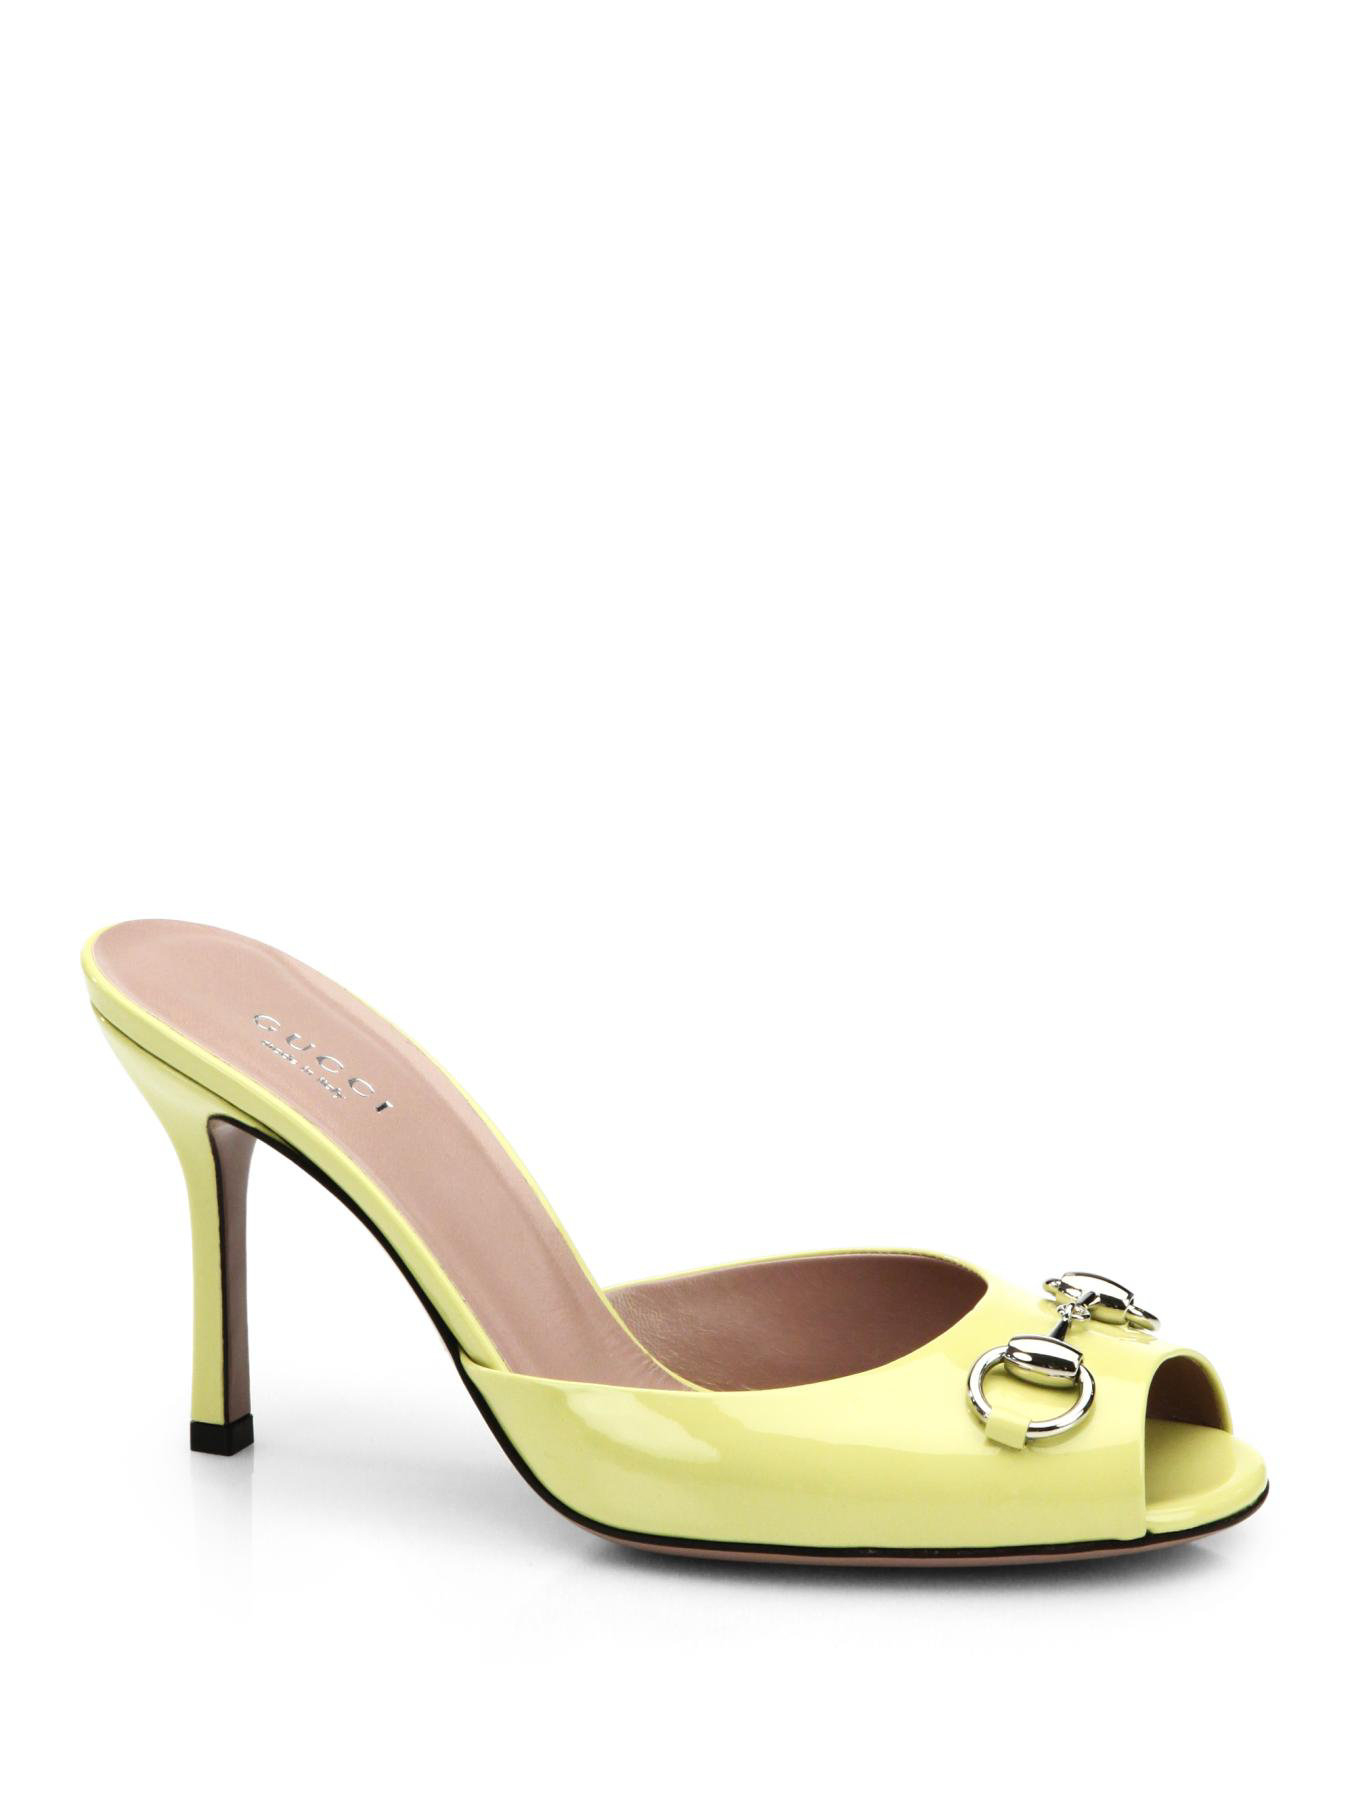 d6c66f68ade2 Lyst - Gucci Jolene Leather Mule Sandals in Yellow